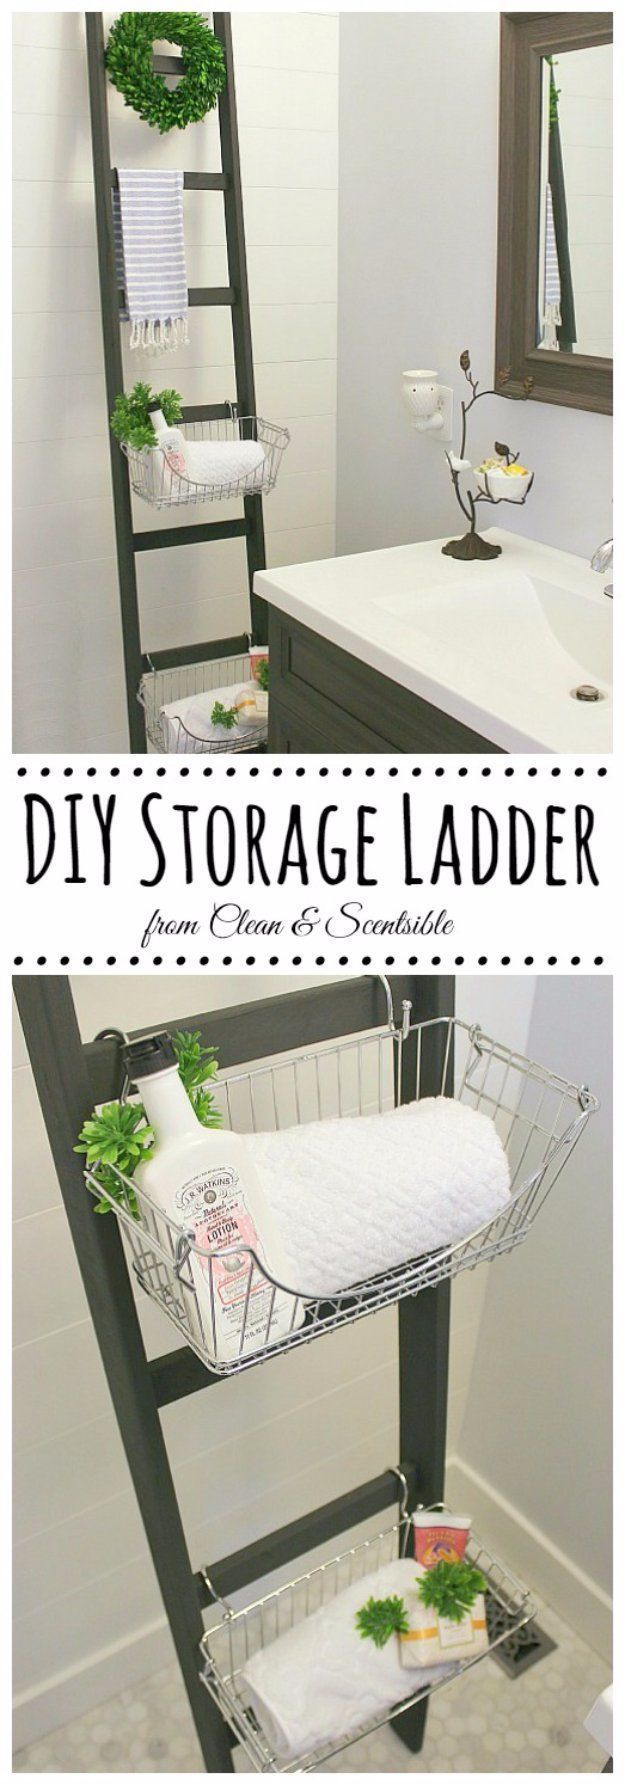 Diy Decorative Bathroom Towels : Best decorative ladders ideas only on half